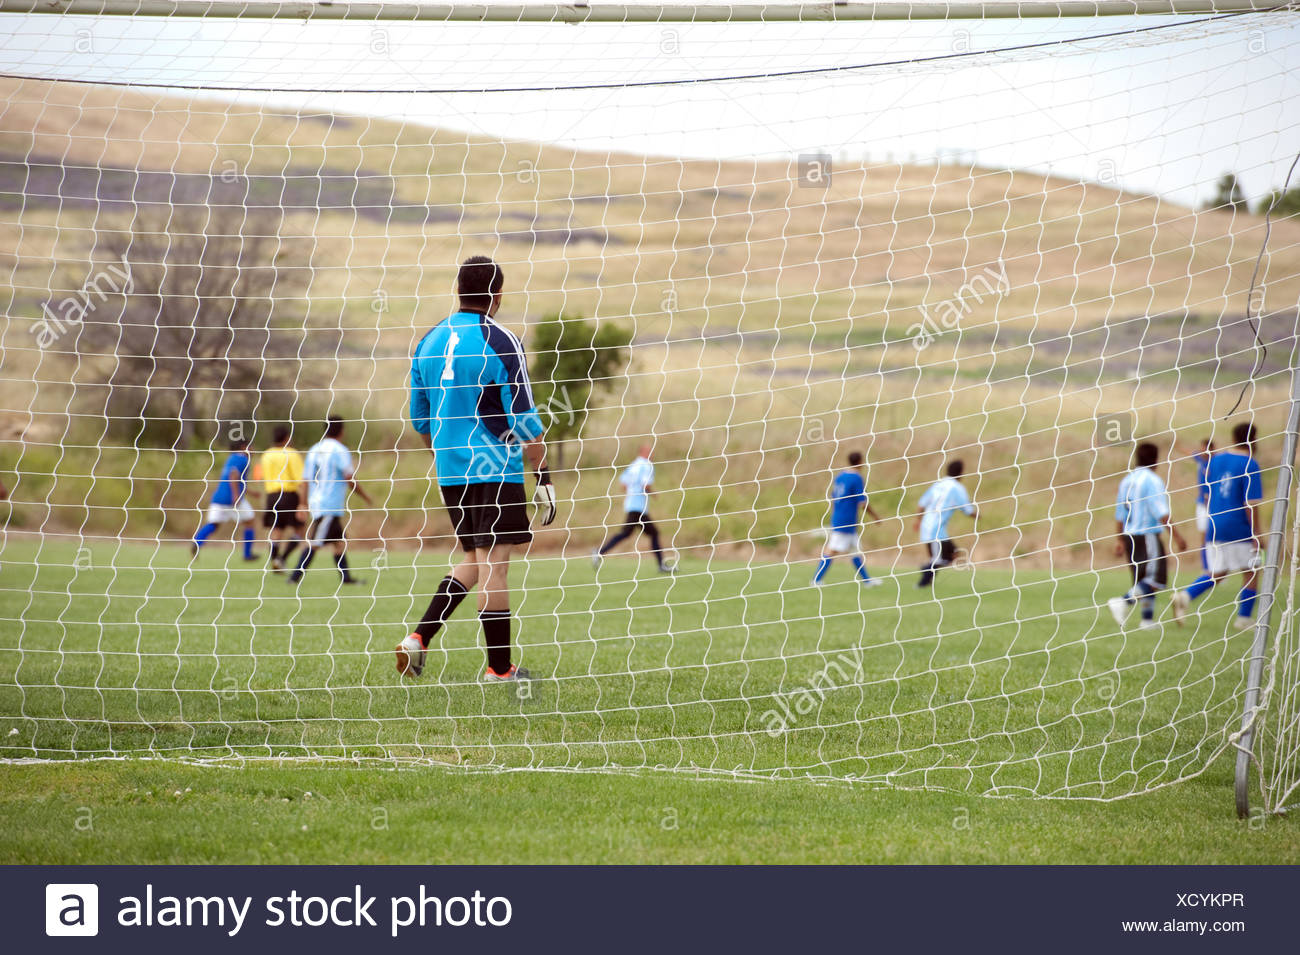 goalie waiting at goal post - Stock Image